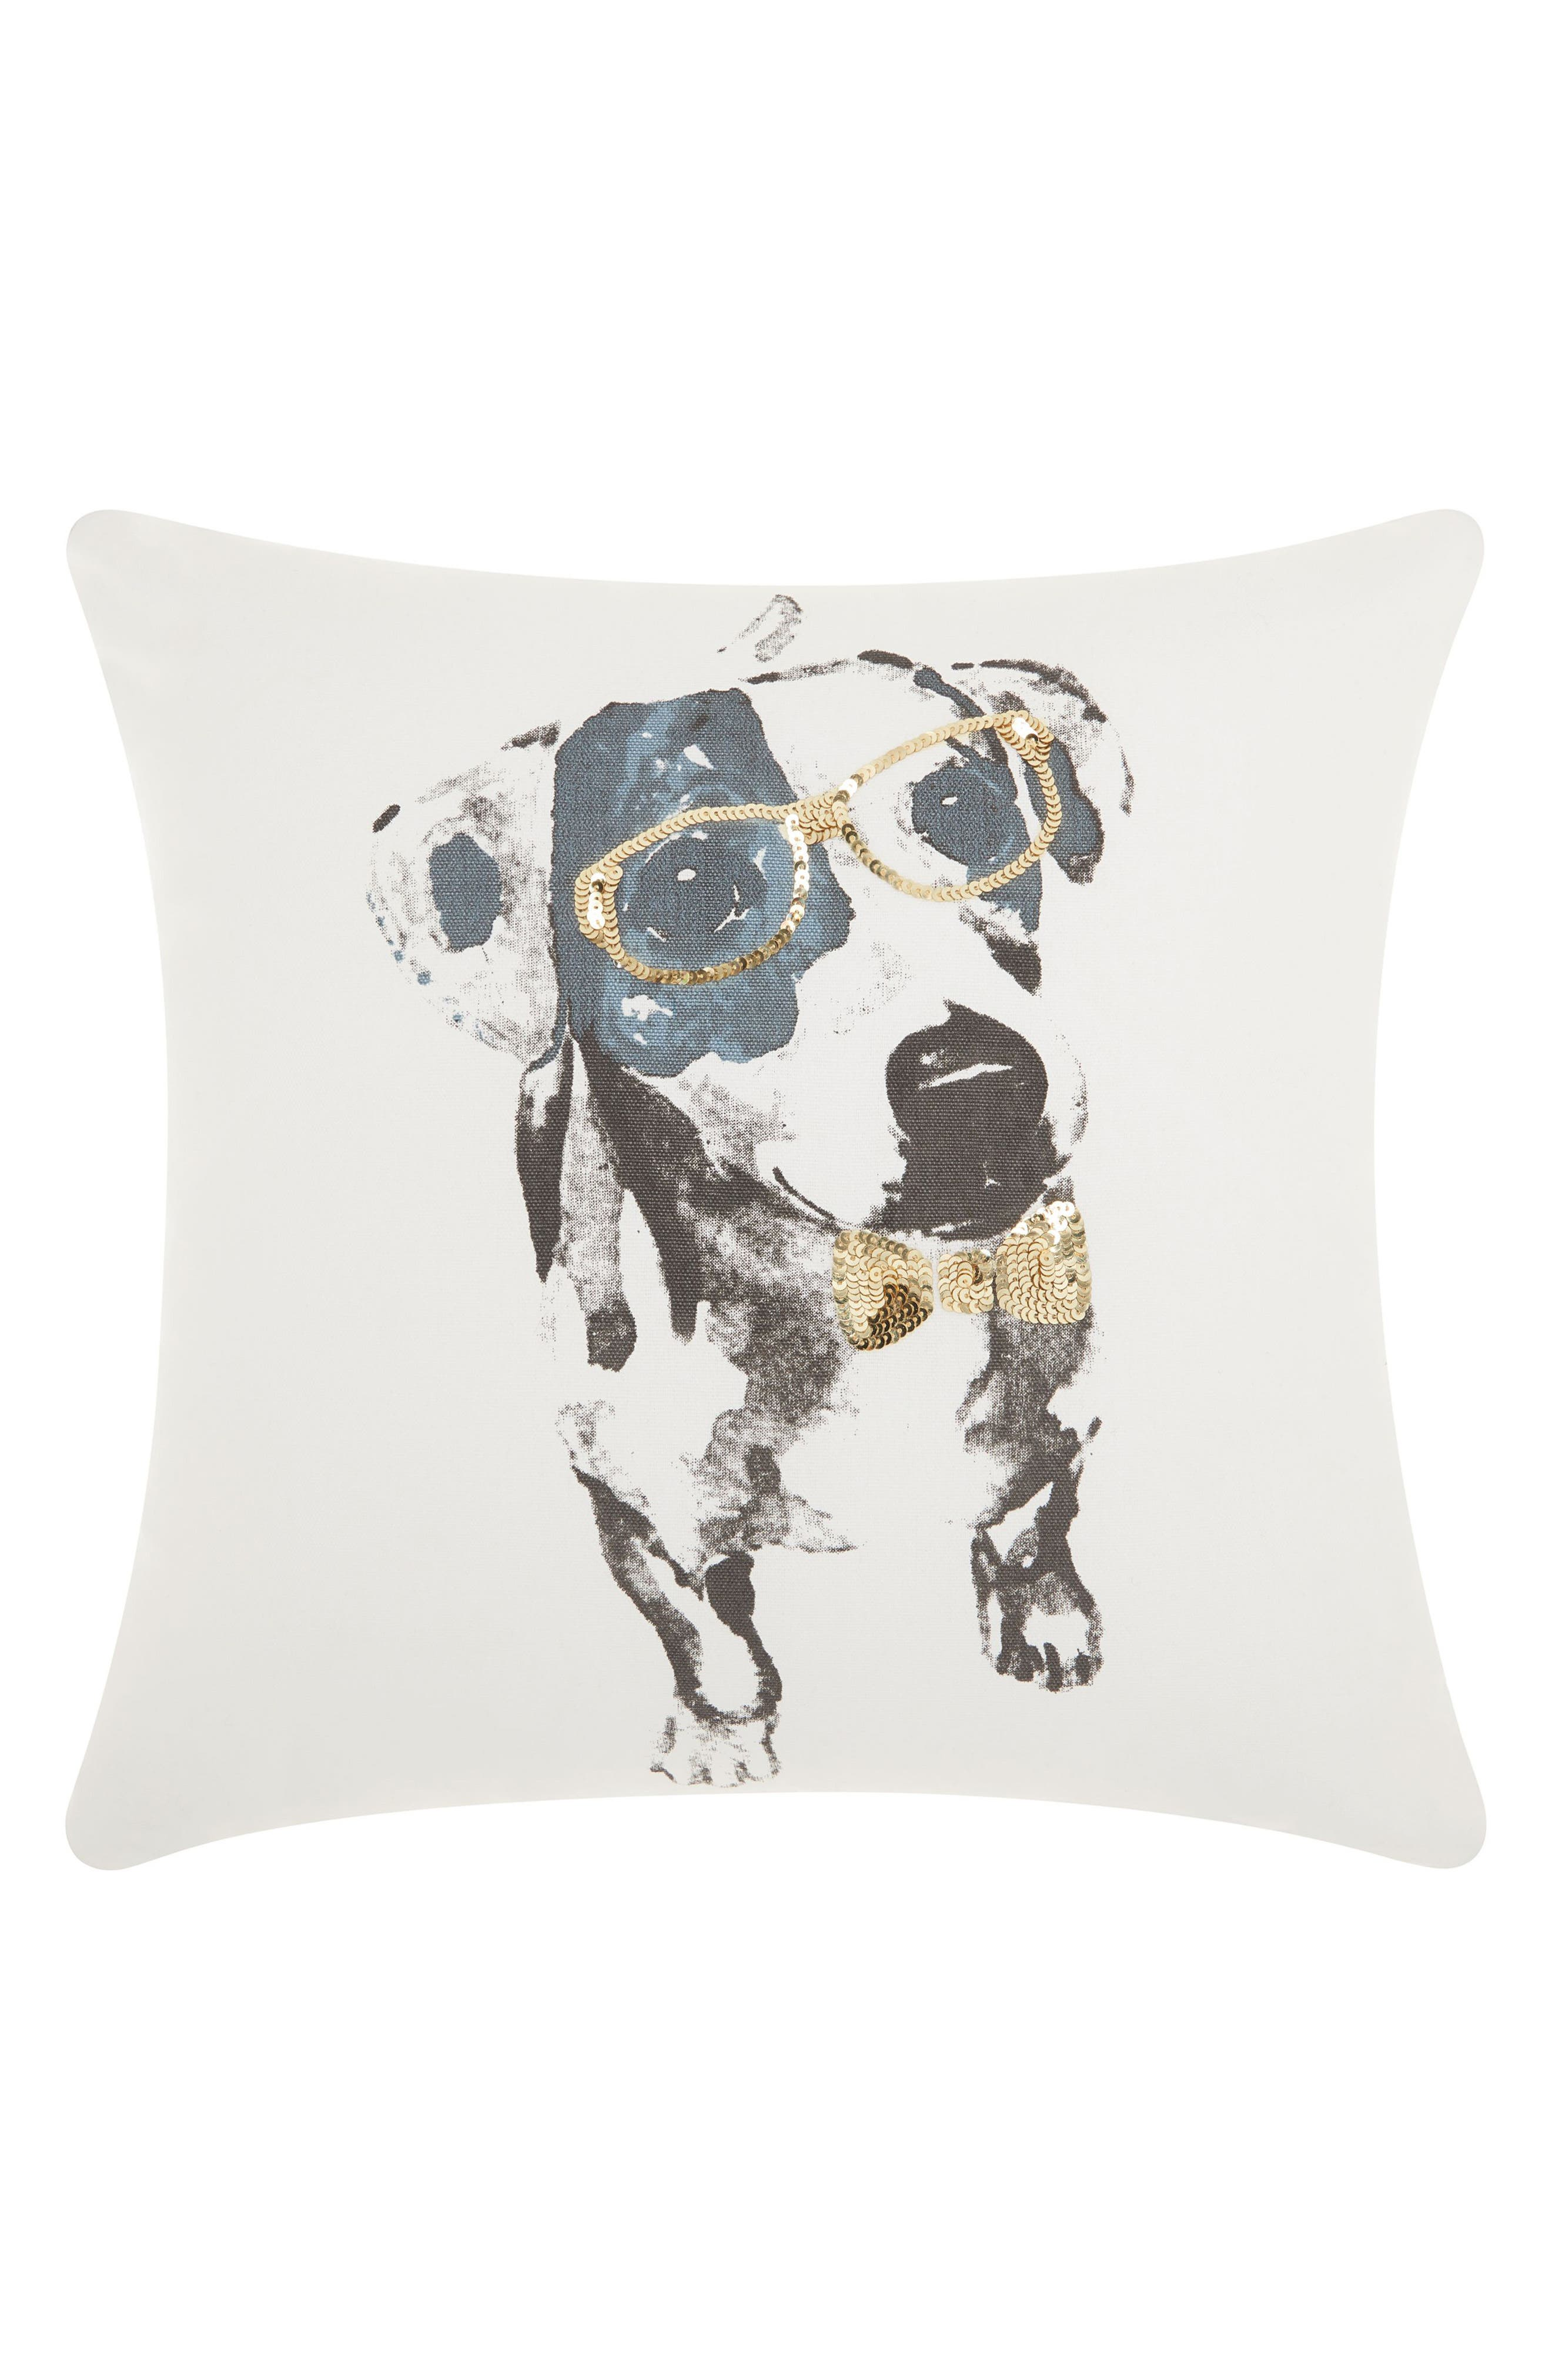 Sequin Dalmatian Accent Pillow,                         Main,                         color, White